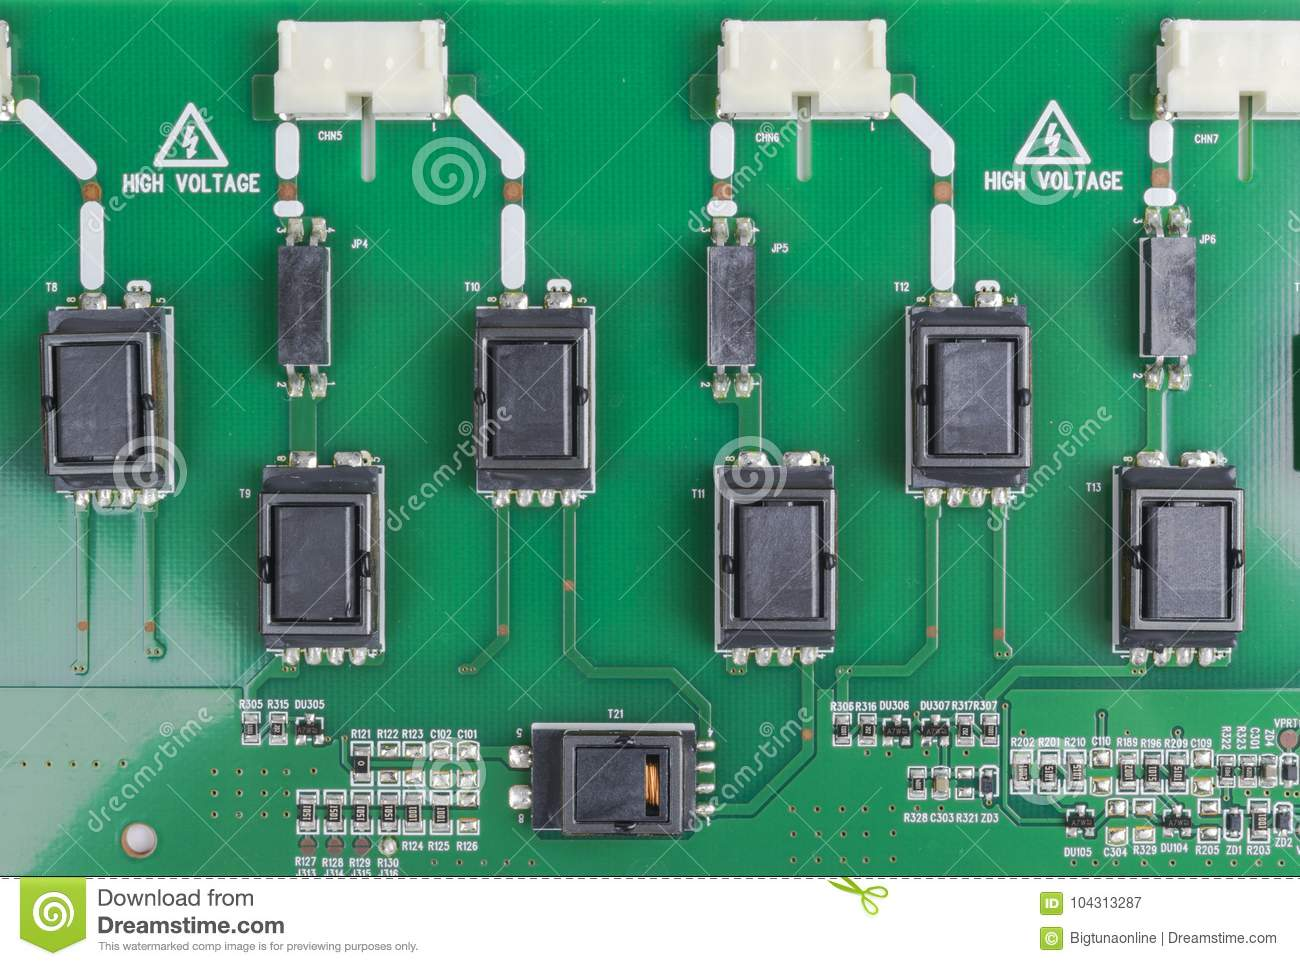 Circuitboard with resistors, microchips and electronic components. Electronic computer hardware technology. Integrated communicati